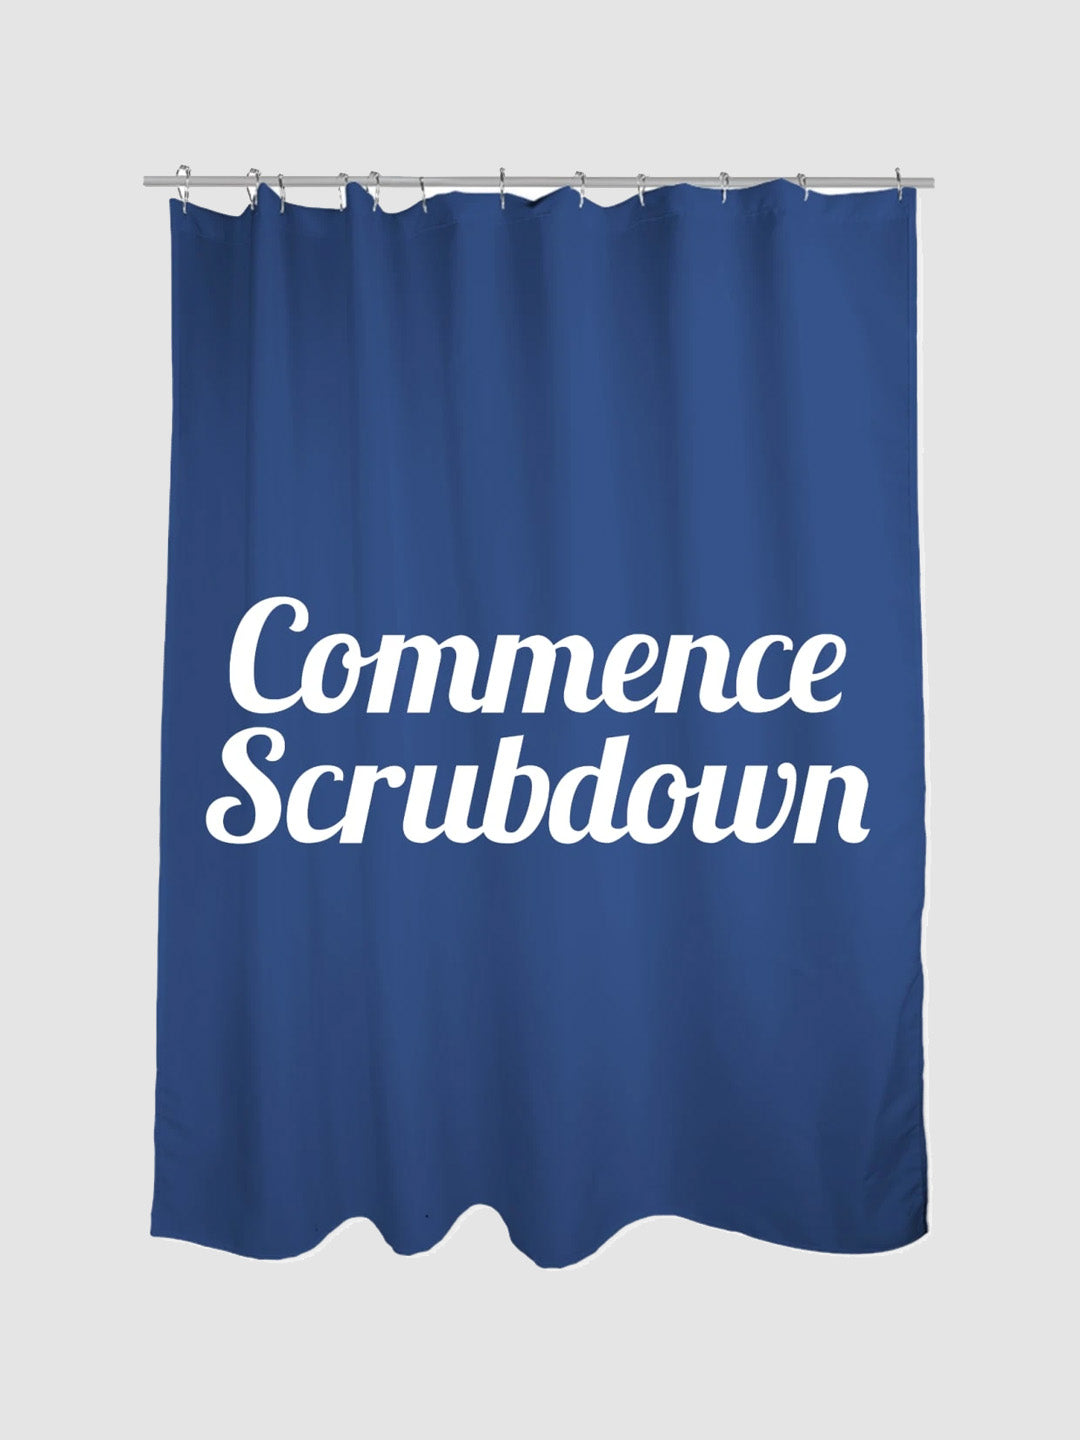 Commence Scrubdown Shower Curtain Blue